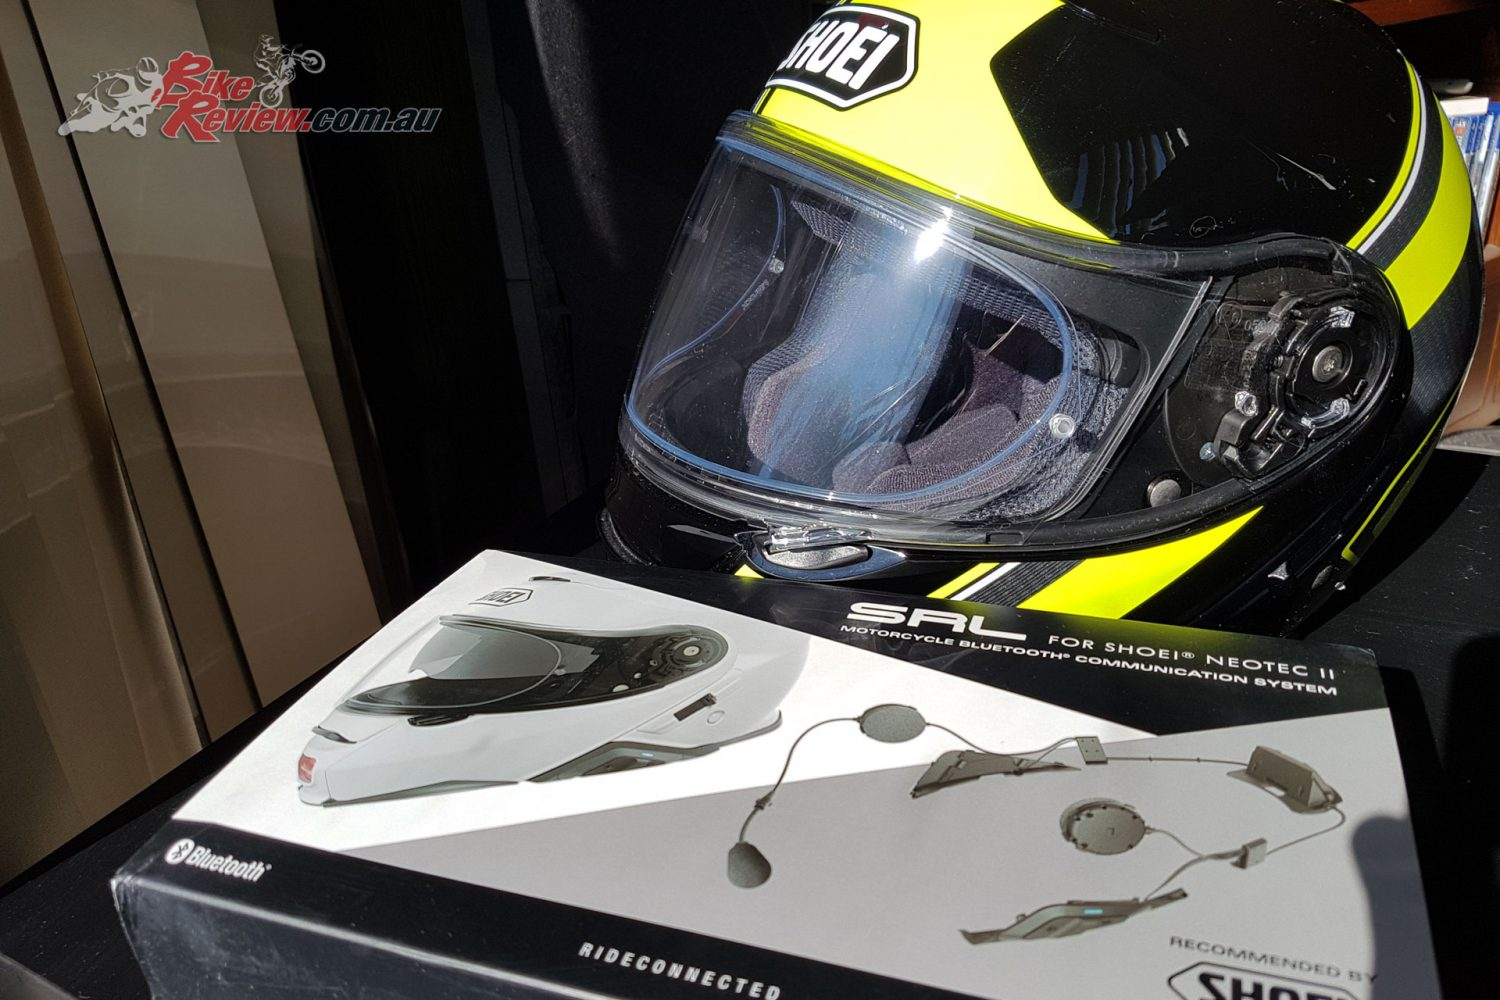 Sena SRL Communication System arrives to join Kris's Shoei Neotec II helmet